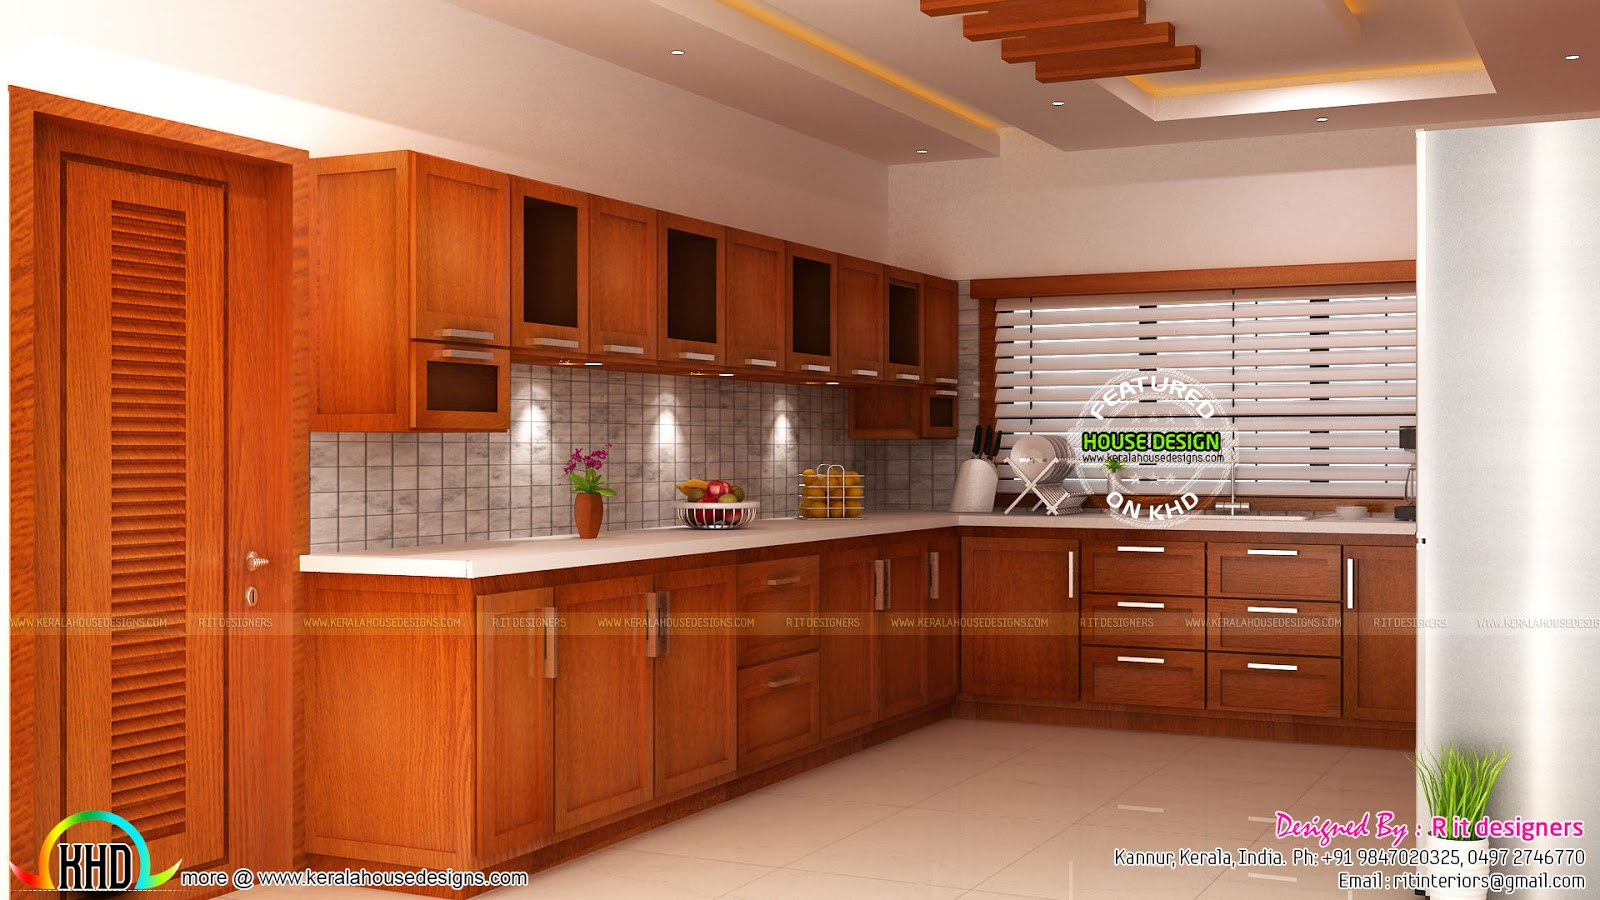 Modular kitchen living and bedroom interior kerala home for Kitchen and bedroom designs